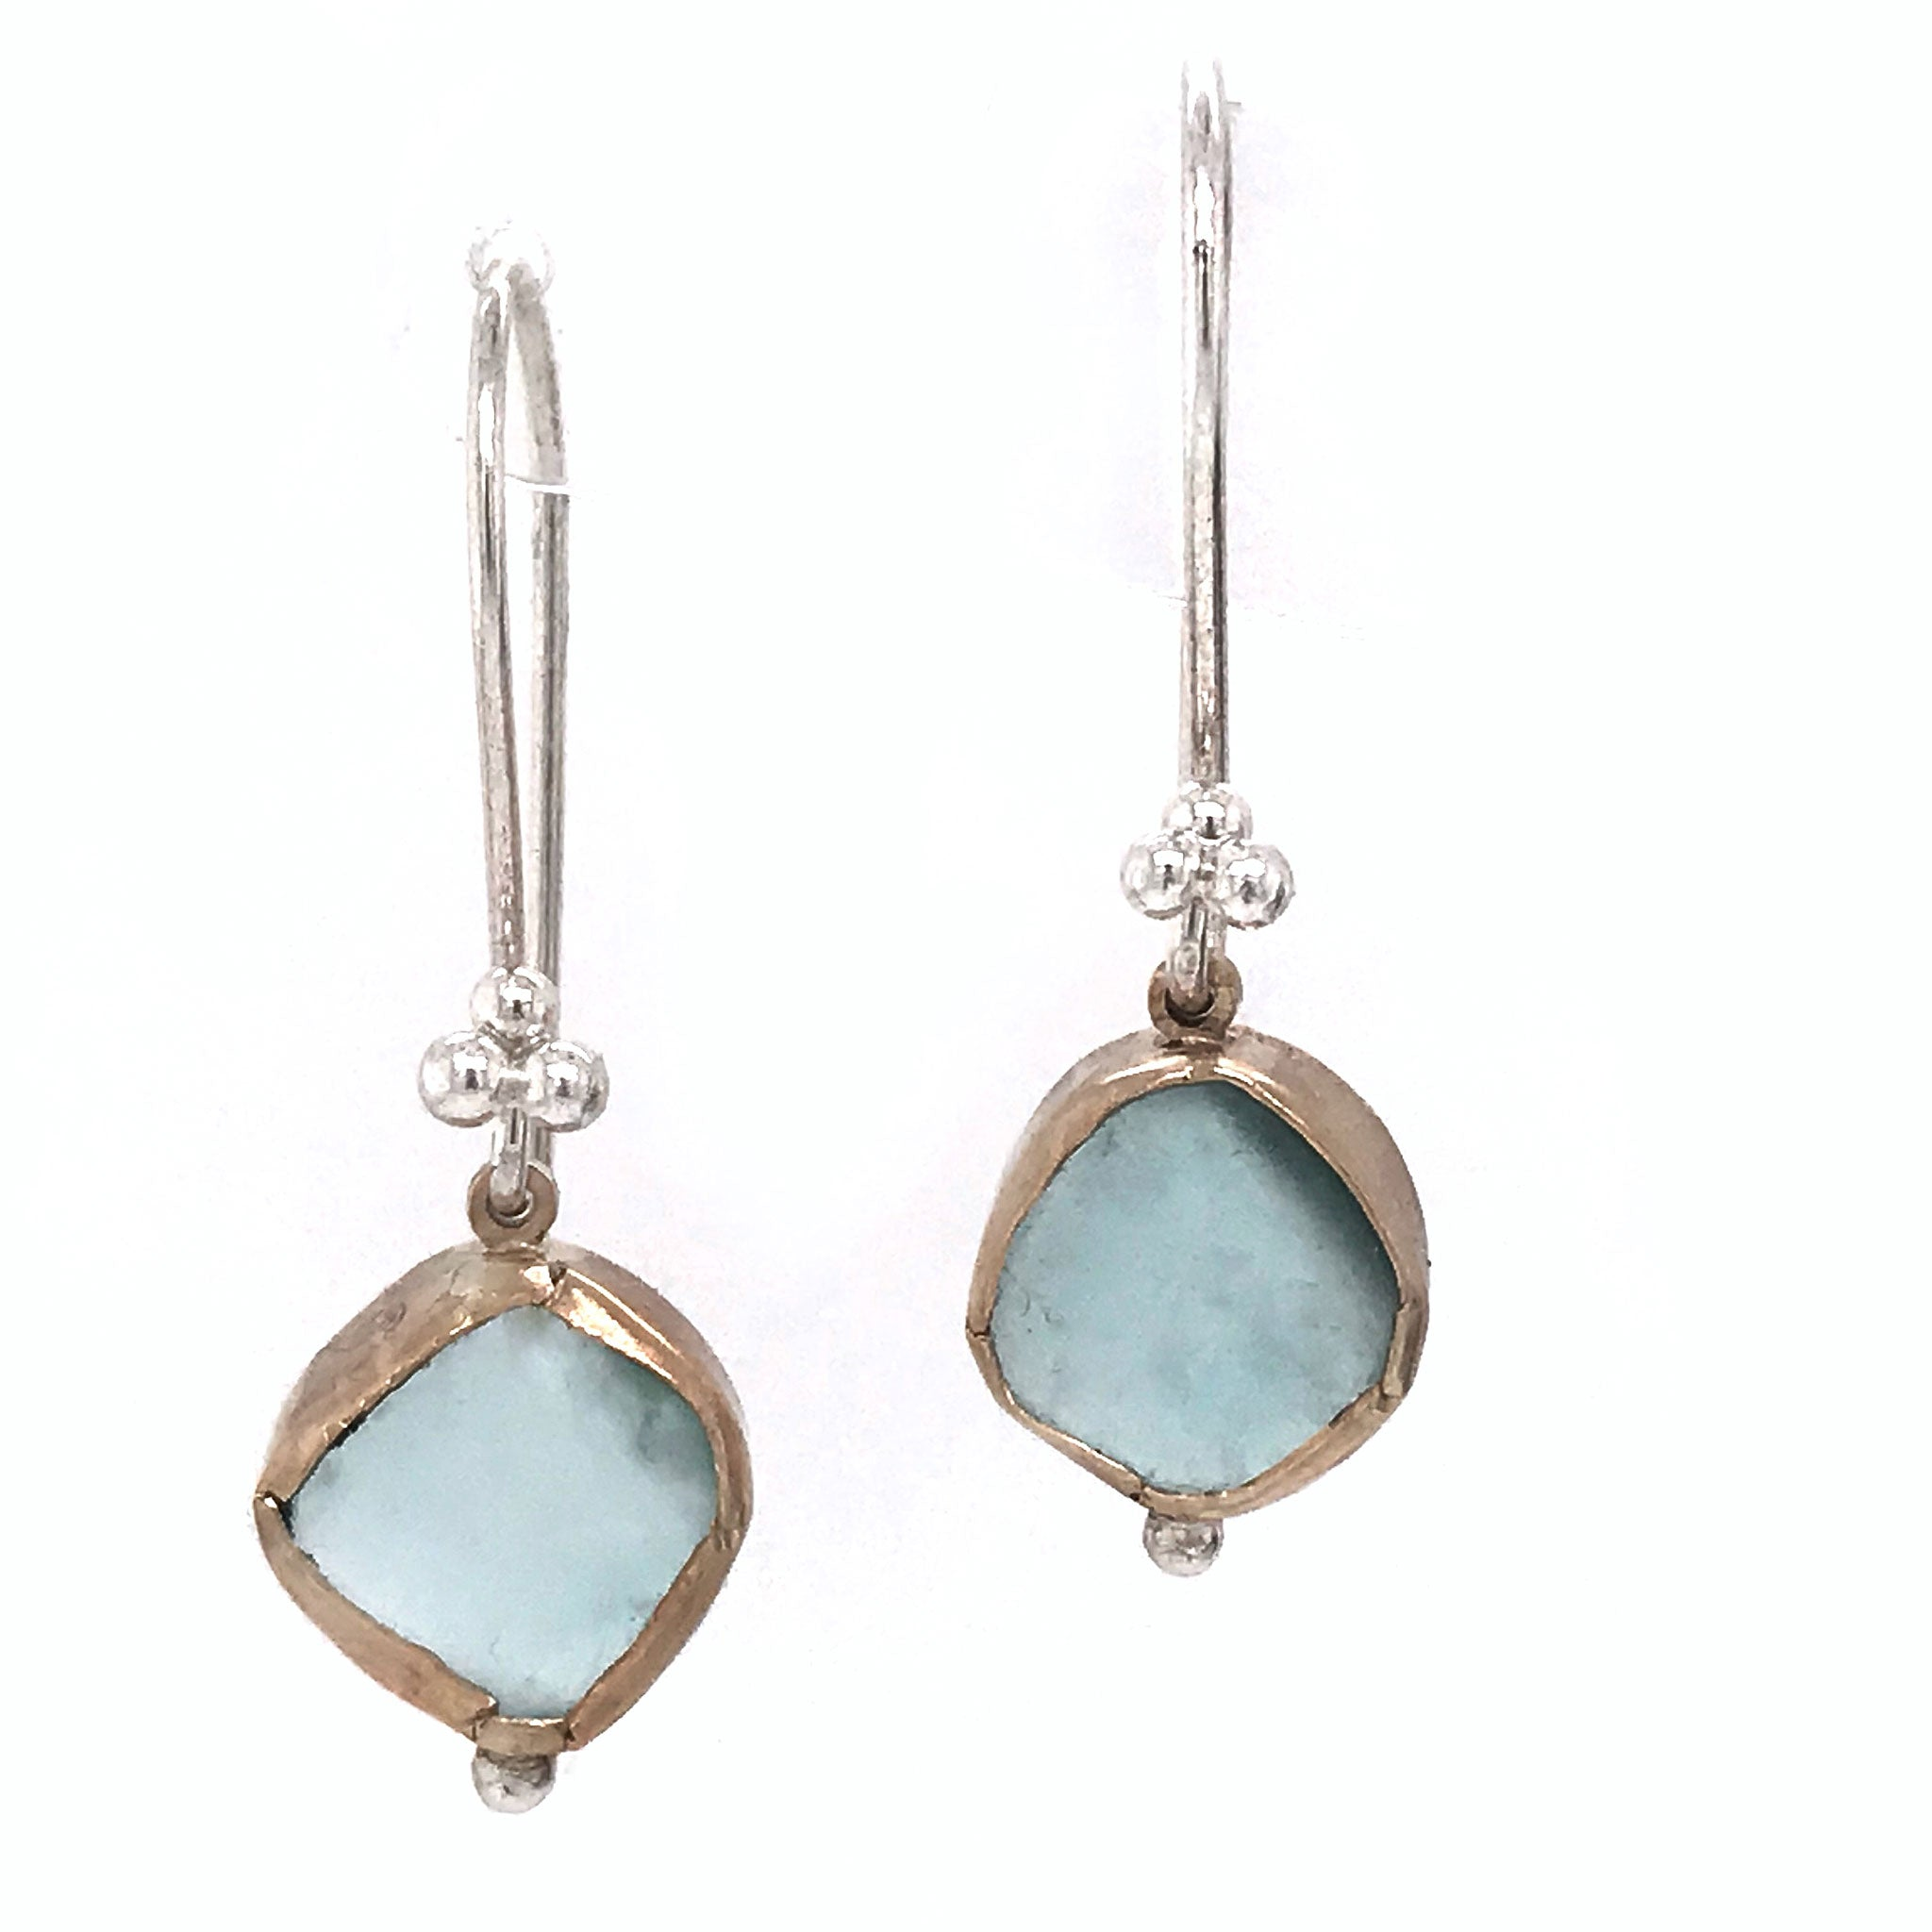 aqua beach glass earrings bezel set in 14k gold  Kriket Broadhurst seaglass jewellery